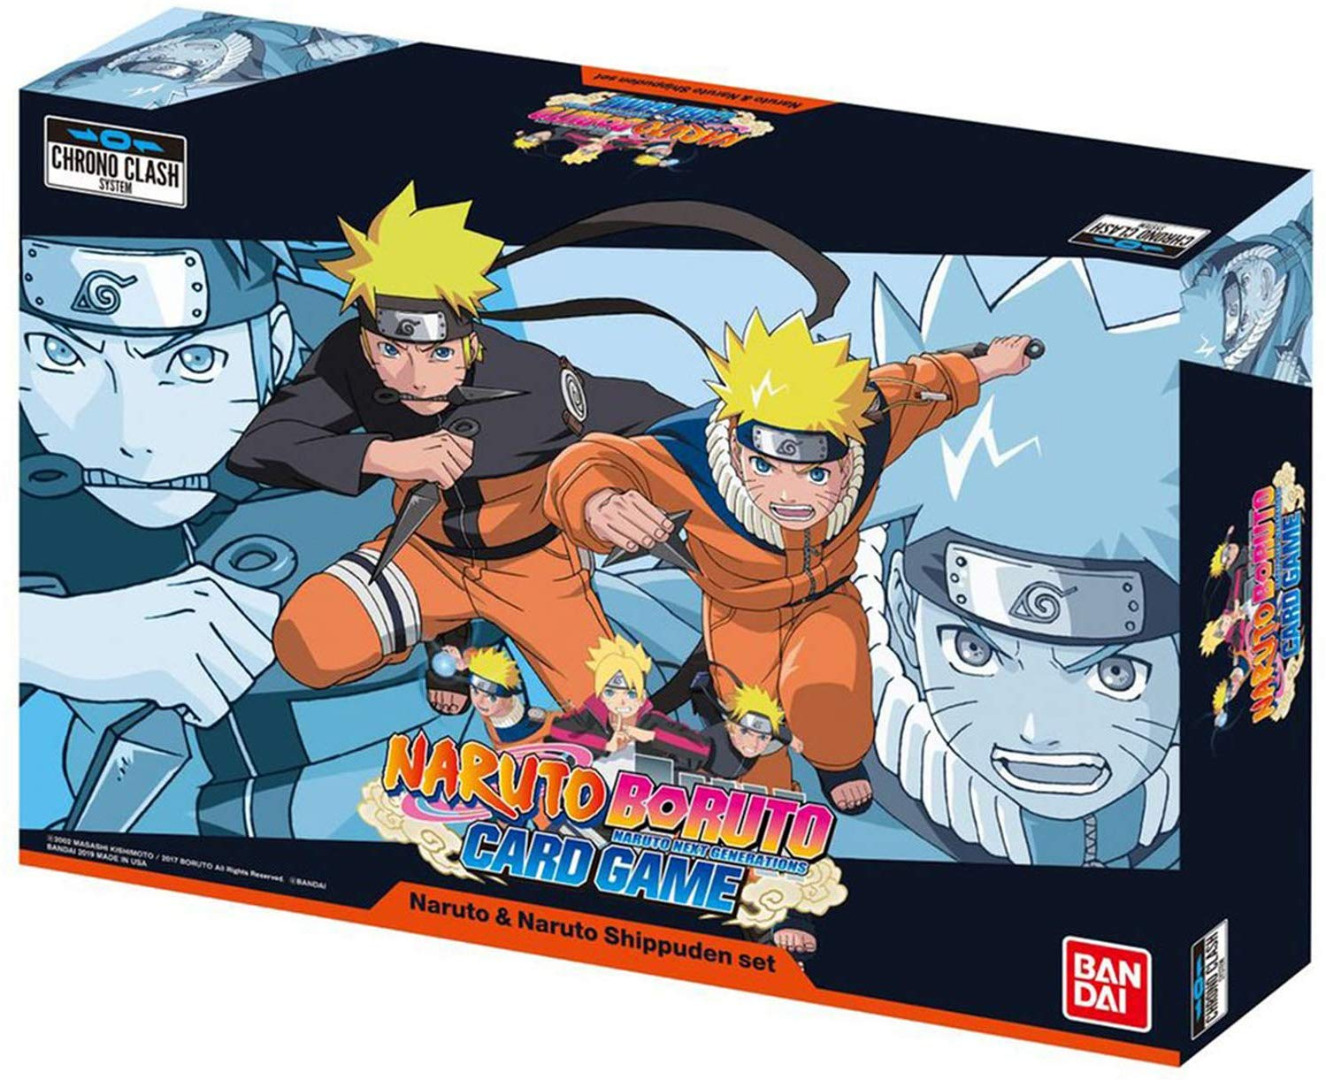 Naruto Boruto Card Game: Naruto & Naruto Shippuden Set English